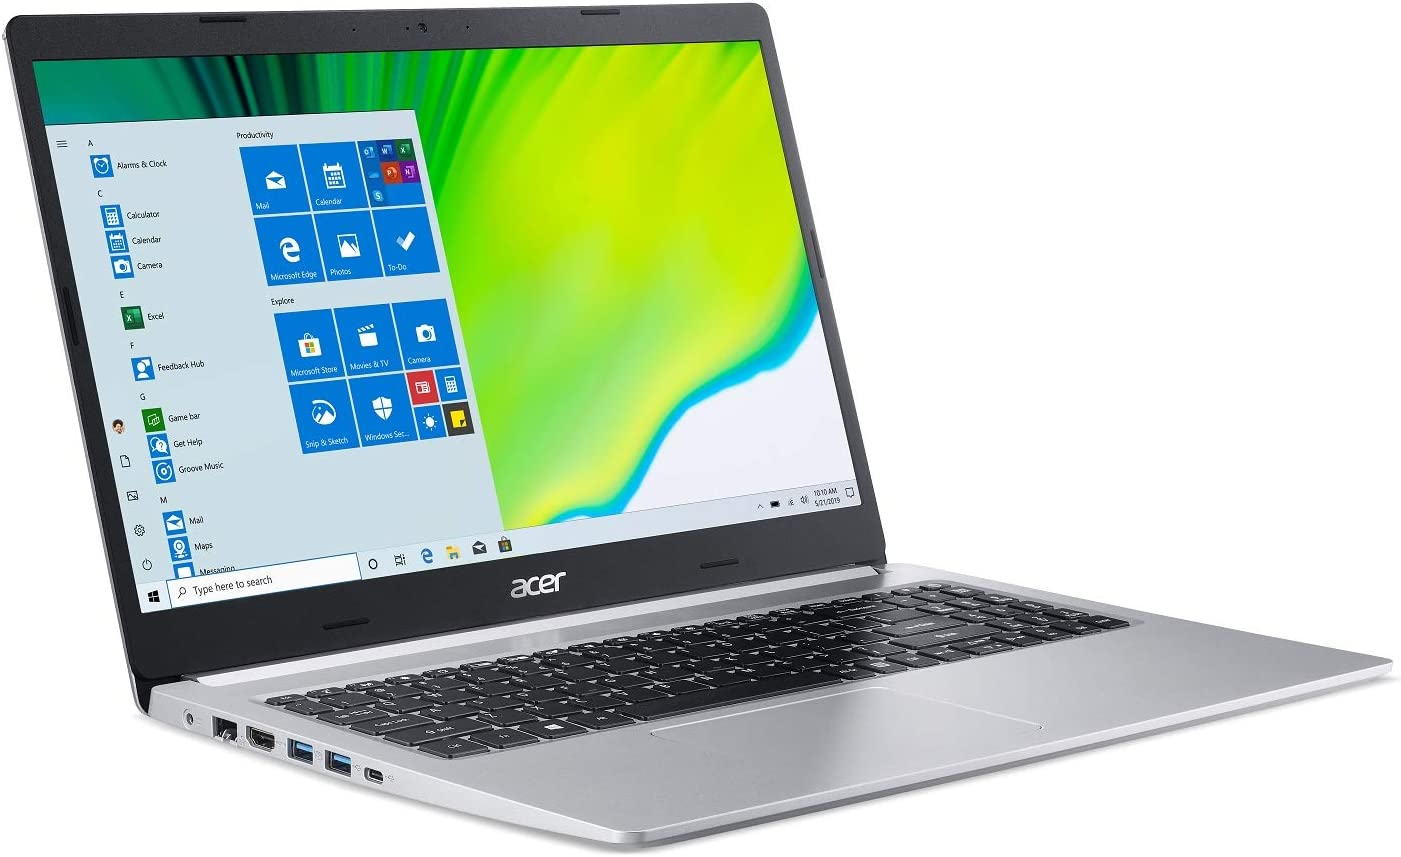 "Acer Aspire 5 A515-44-R2SA, 15.6"" Full HD, AMD Ryzen 7 4700U Octa-Core Mobile Processor with Radeon Graphics, 8GB DDR4, 512GB NVMe SSD, WiFi 5, HD Webcam, Backlit Keyboard, Windows 10 Home"